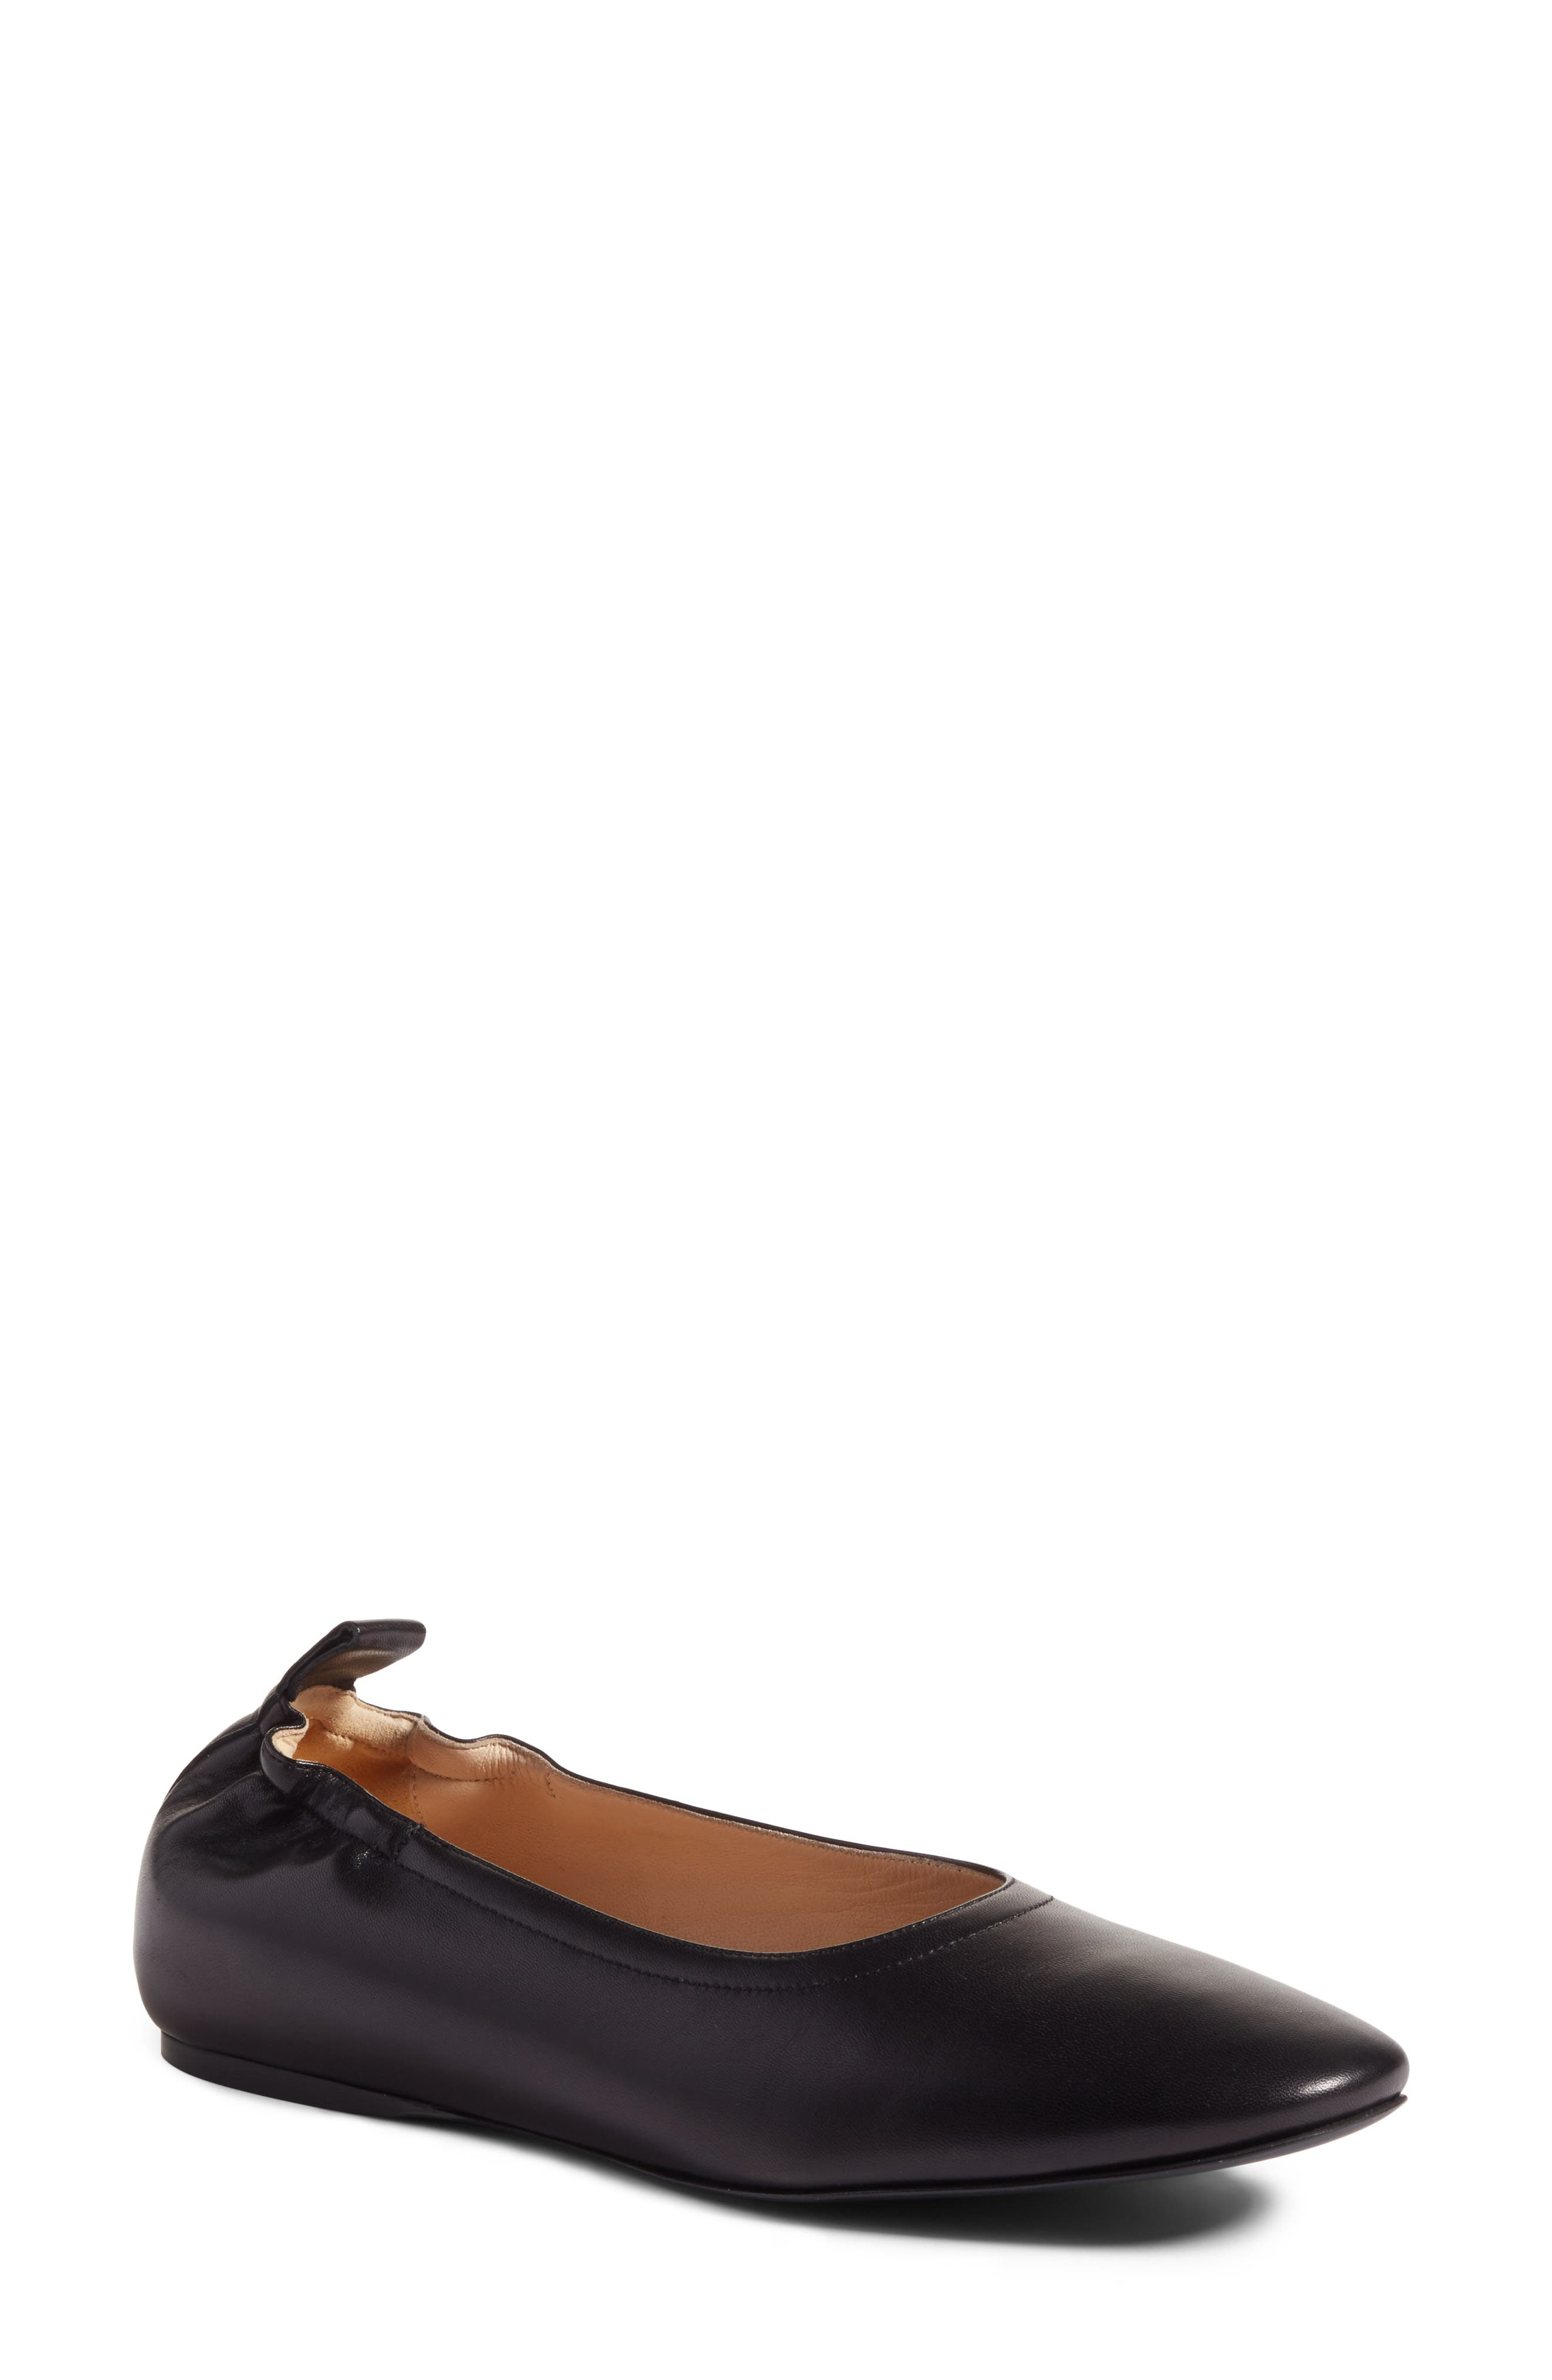 Alternate Image 1 Selected - Everlane The Day Flat (Women)